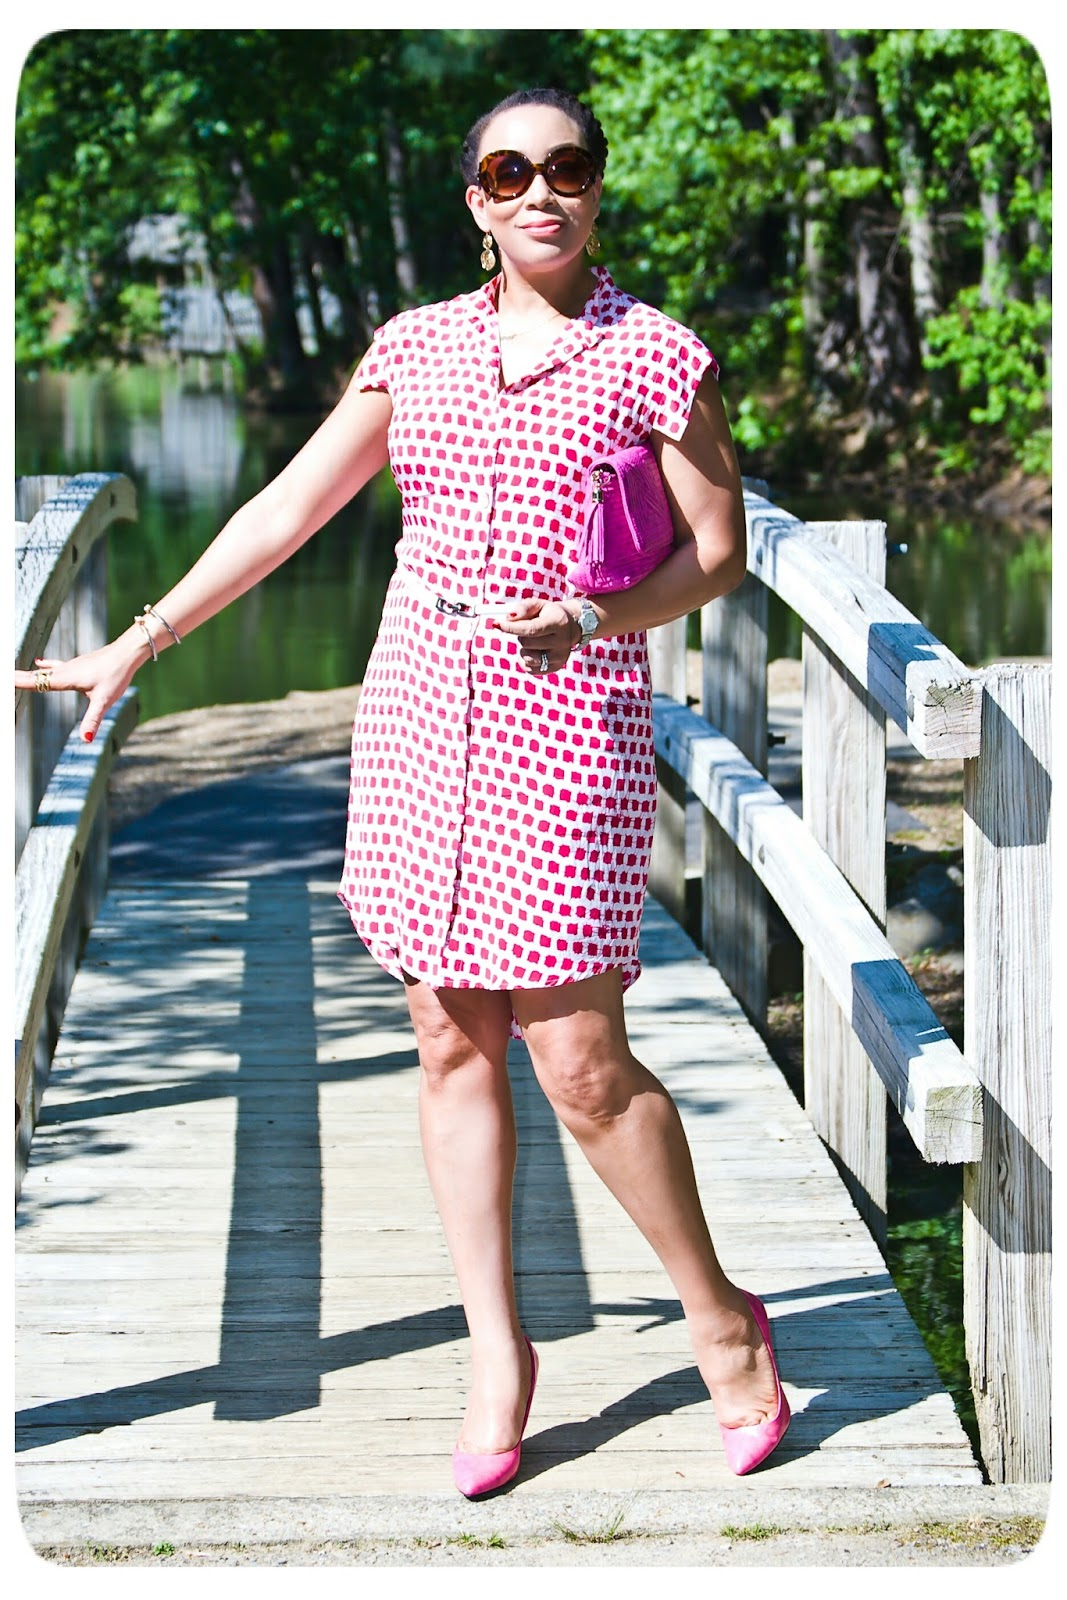 Silk Shirt dress - Erica B's - DIY Style!